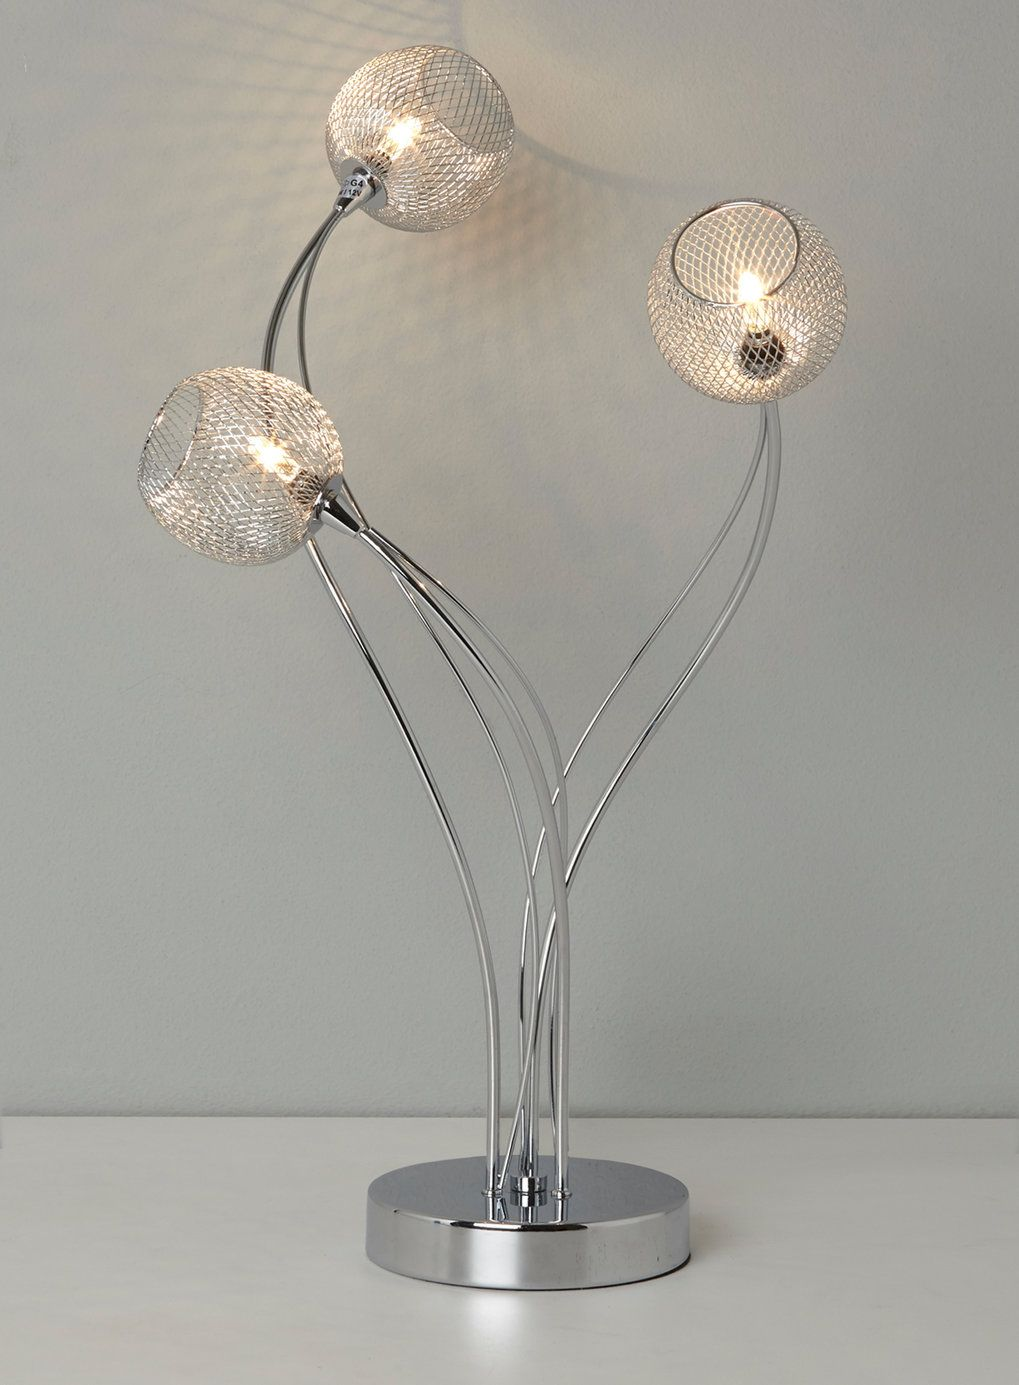 Leighton table lamp table lamps view all lighting bulbs leighton table lamp table lamps view all lighting bulbs home lighting mozeypictures Image collections